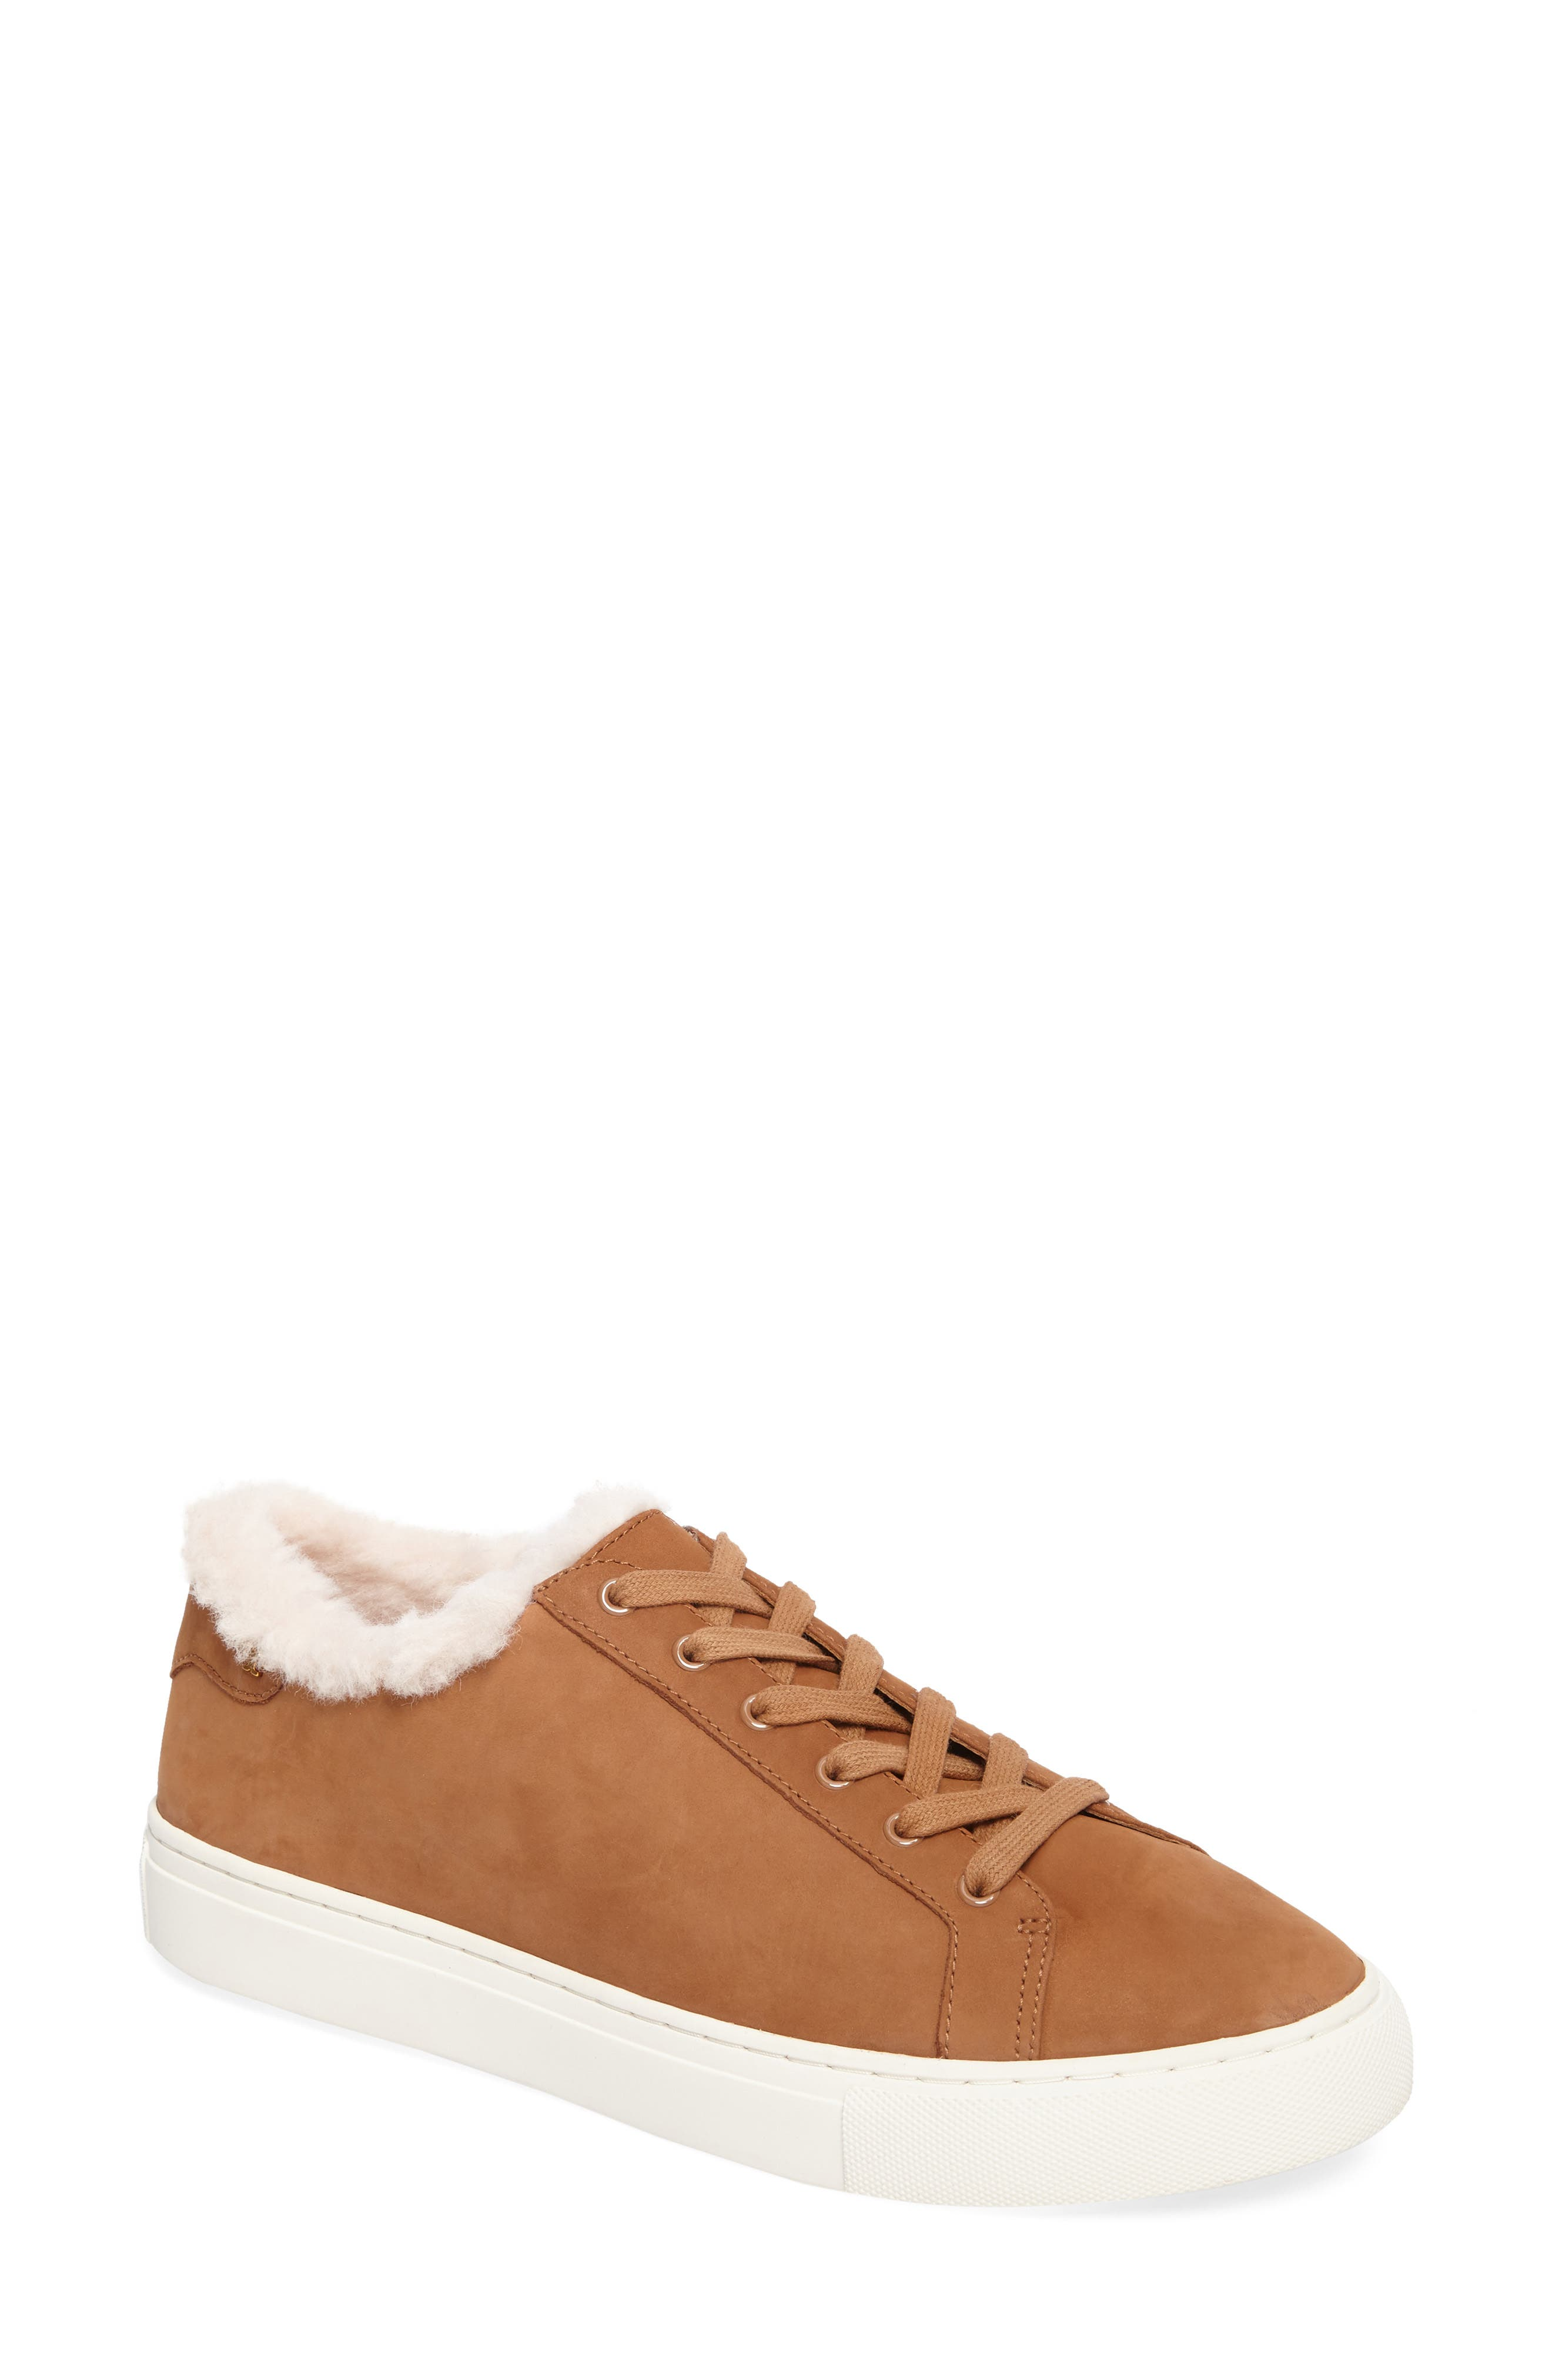 Tory Burch Lawrence Genuine Shearling Lined Sneaker (Women)